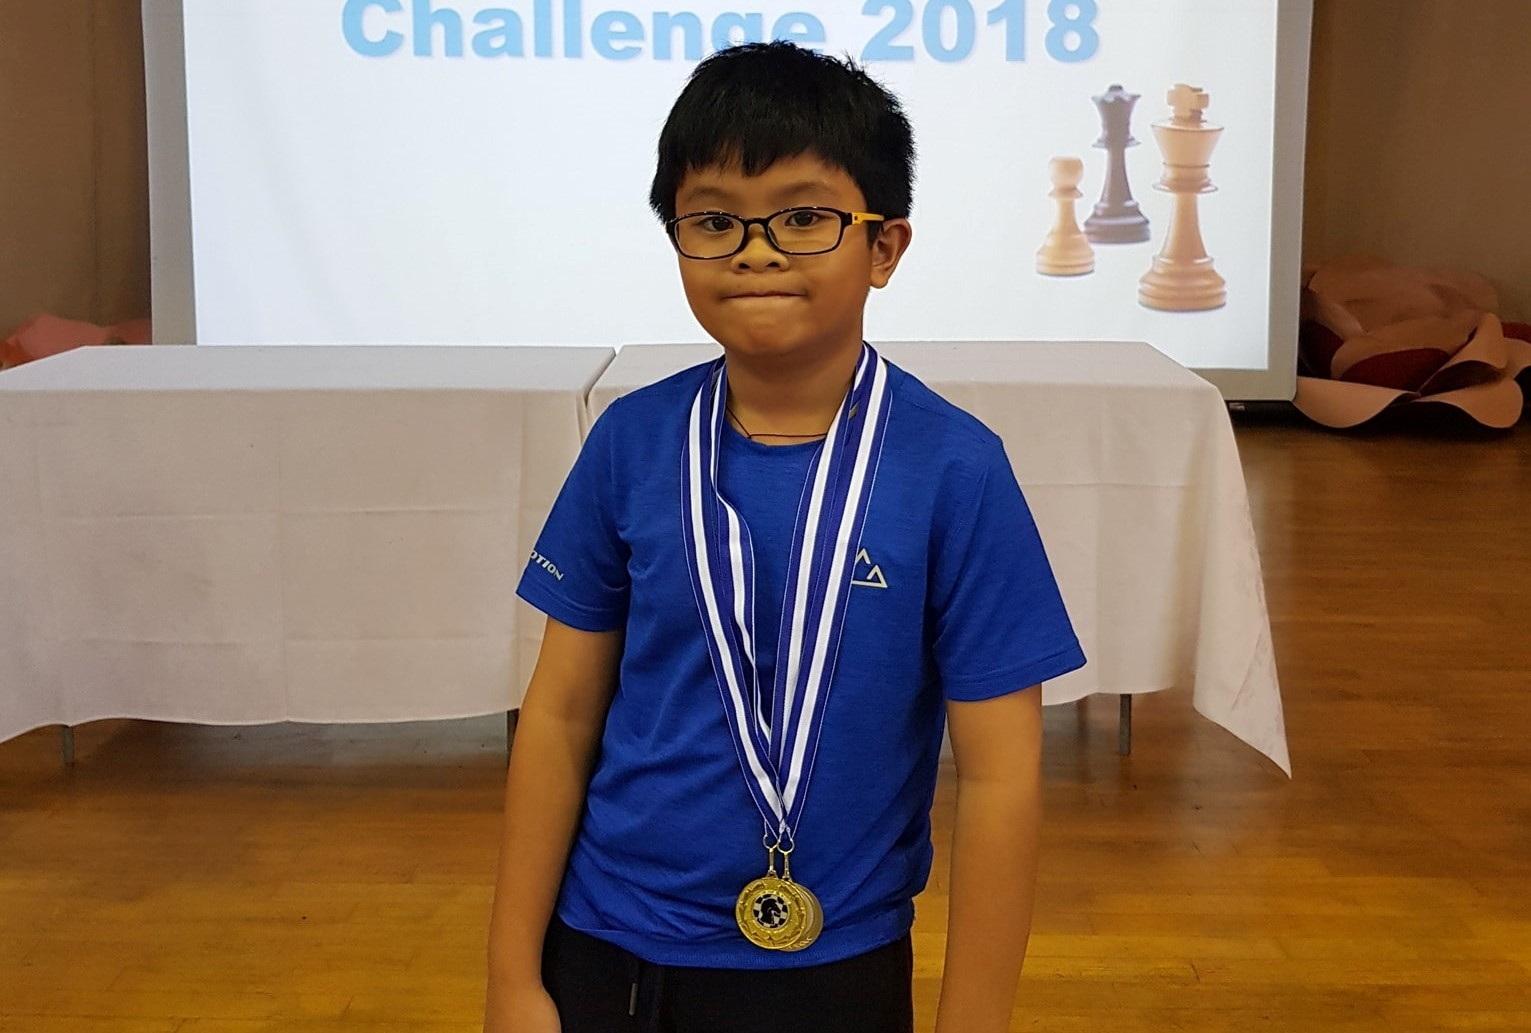 9-year-old Pinoy prevails at two International Chess tourneys